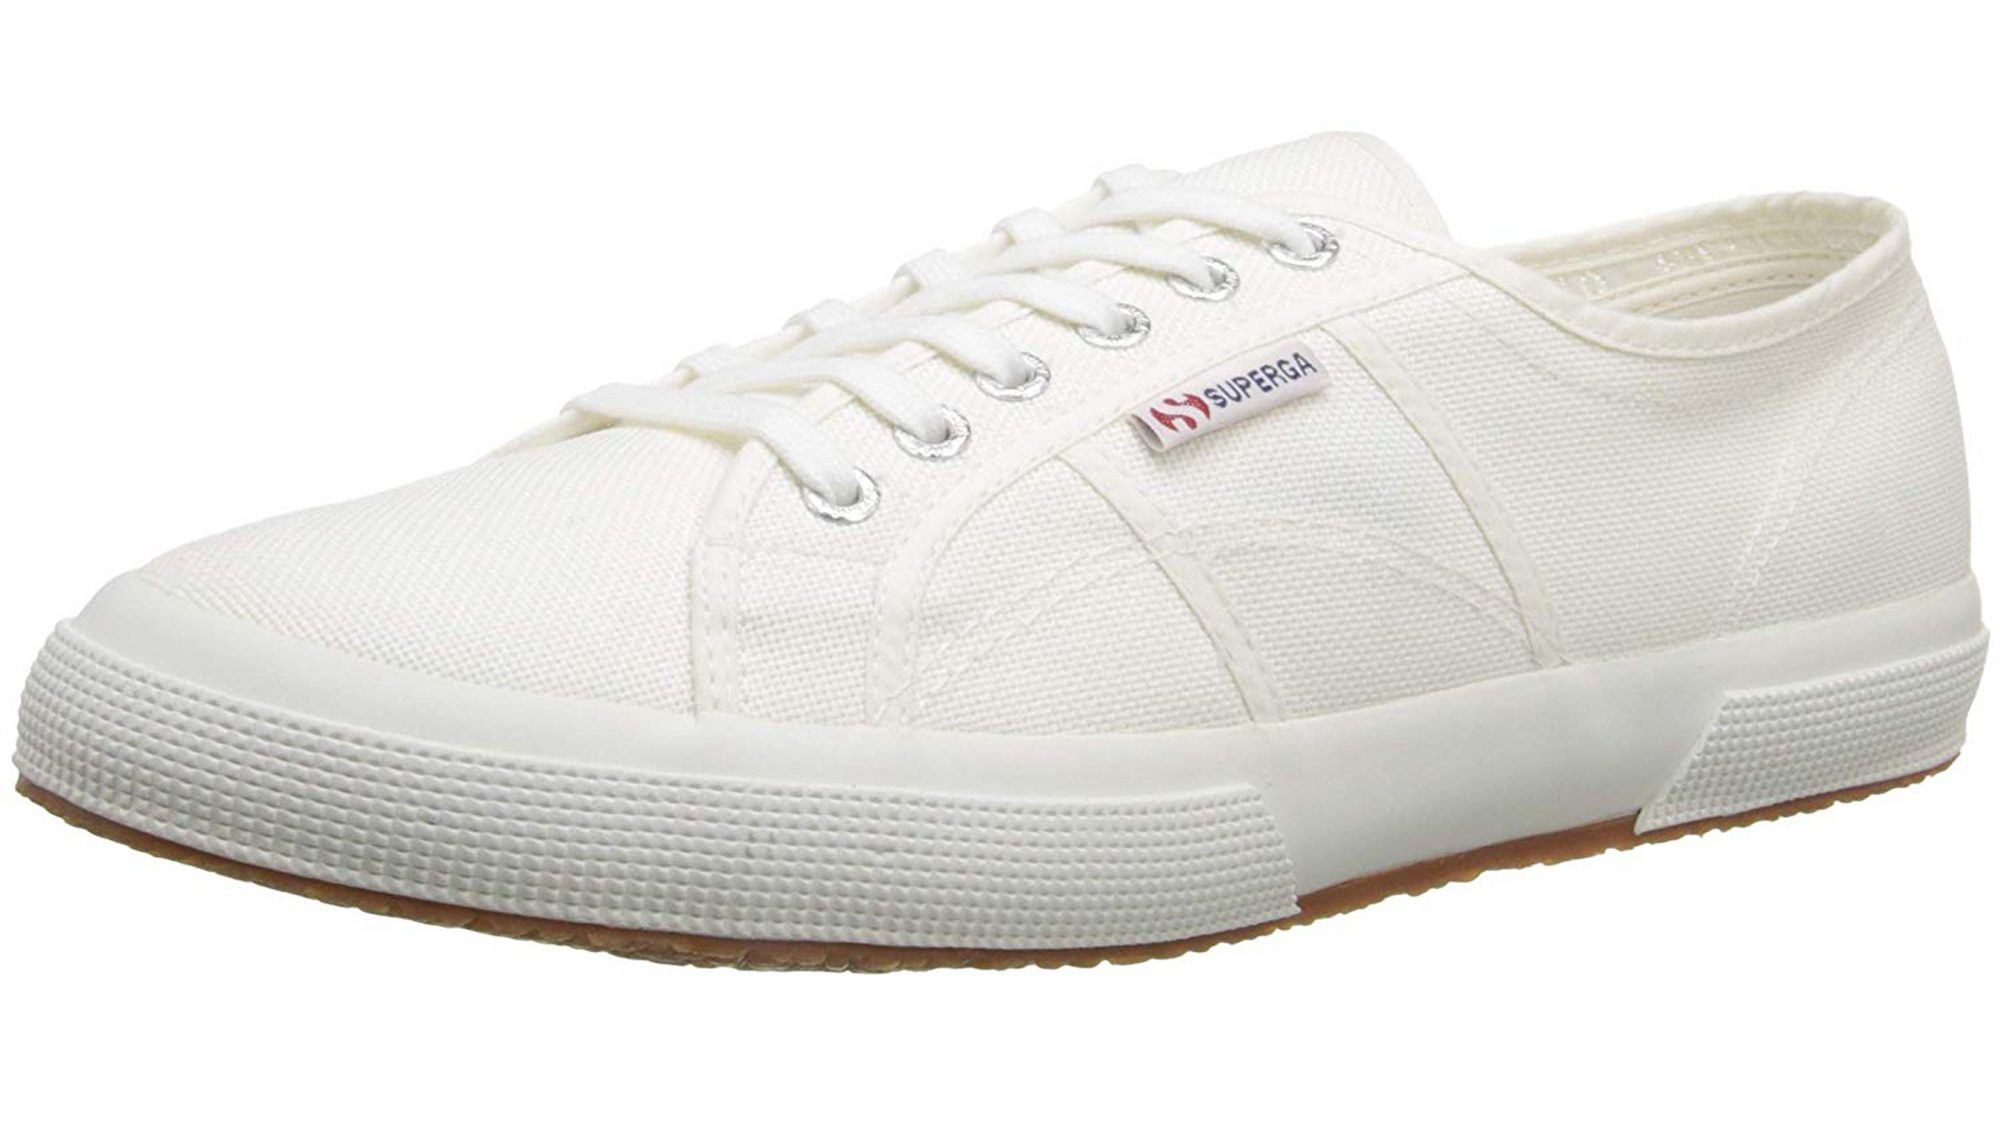 Superga Women's 2750 Cotu Sneaker on Amazon